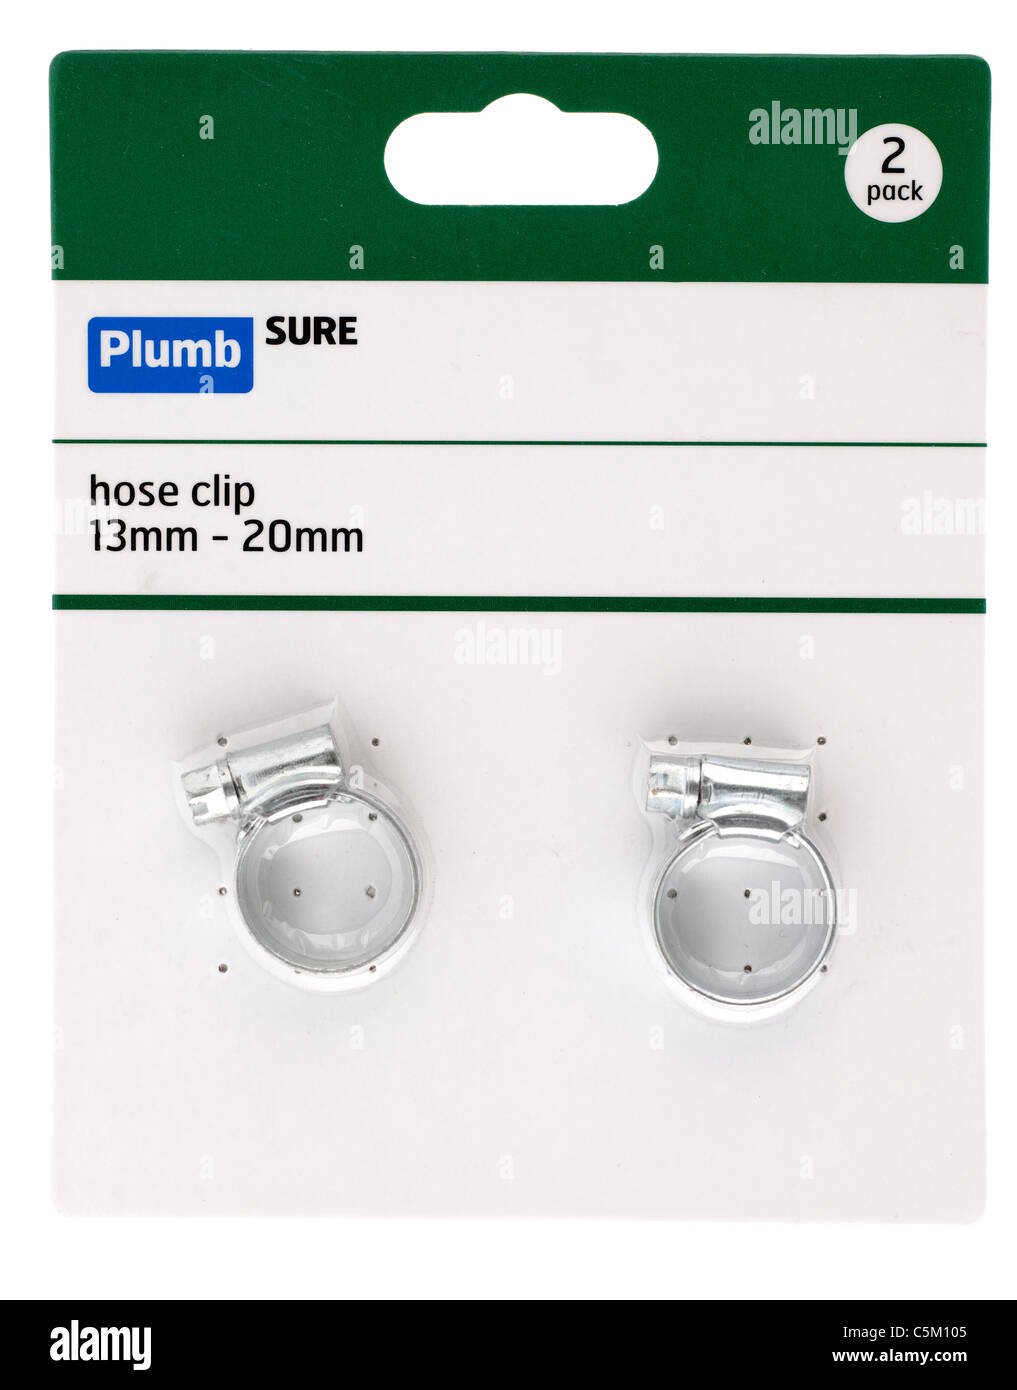 Plumb Sure Two pack of 13mm 20mm hose clips. - Stock Image